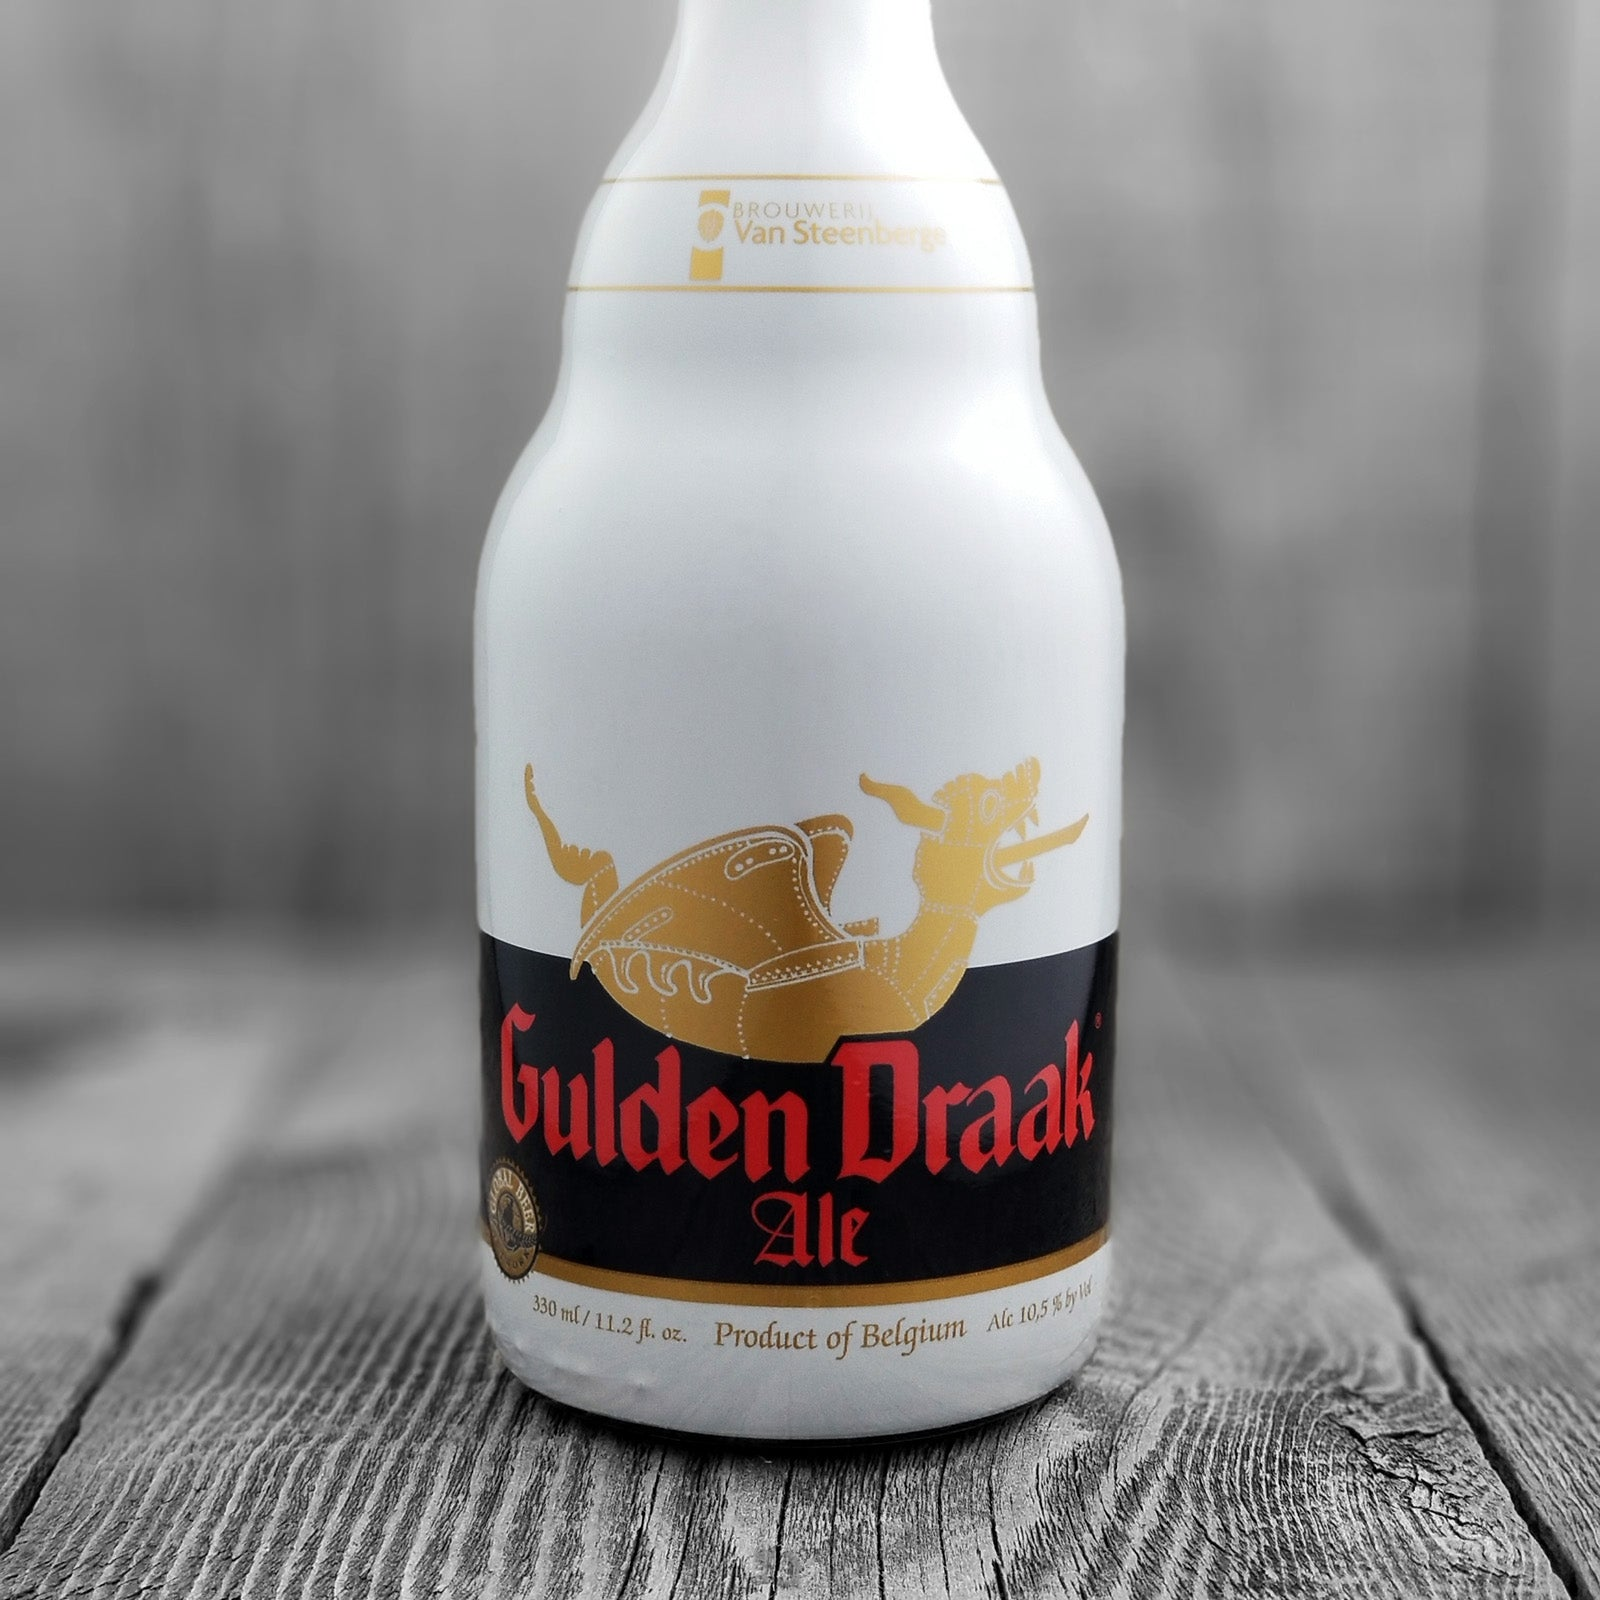 Beer! - Page 24 Gulden-draak-ale-330ml-bottle_973ac96b-916d-42ef-b47d-69787db3cb98_1600x